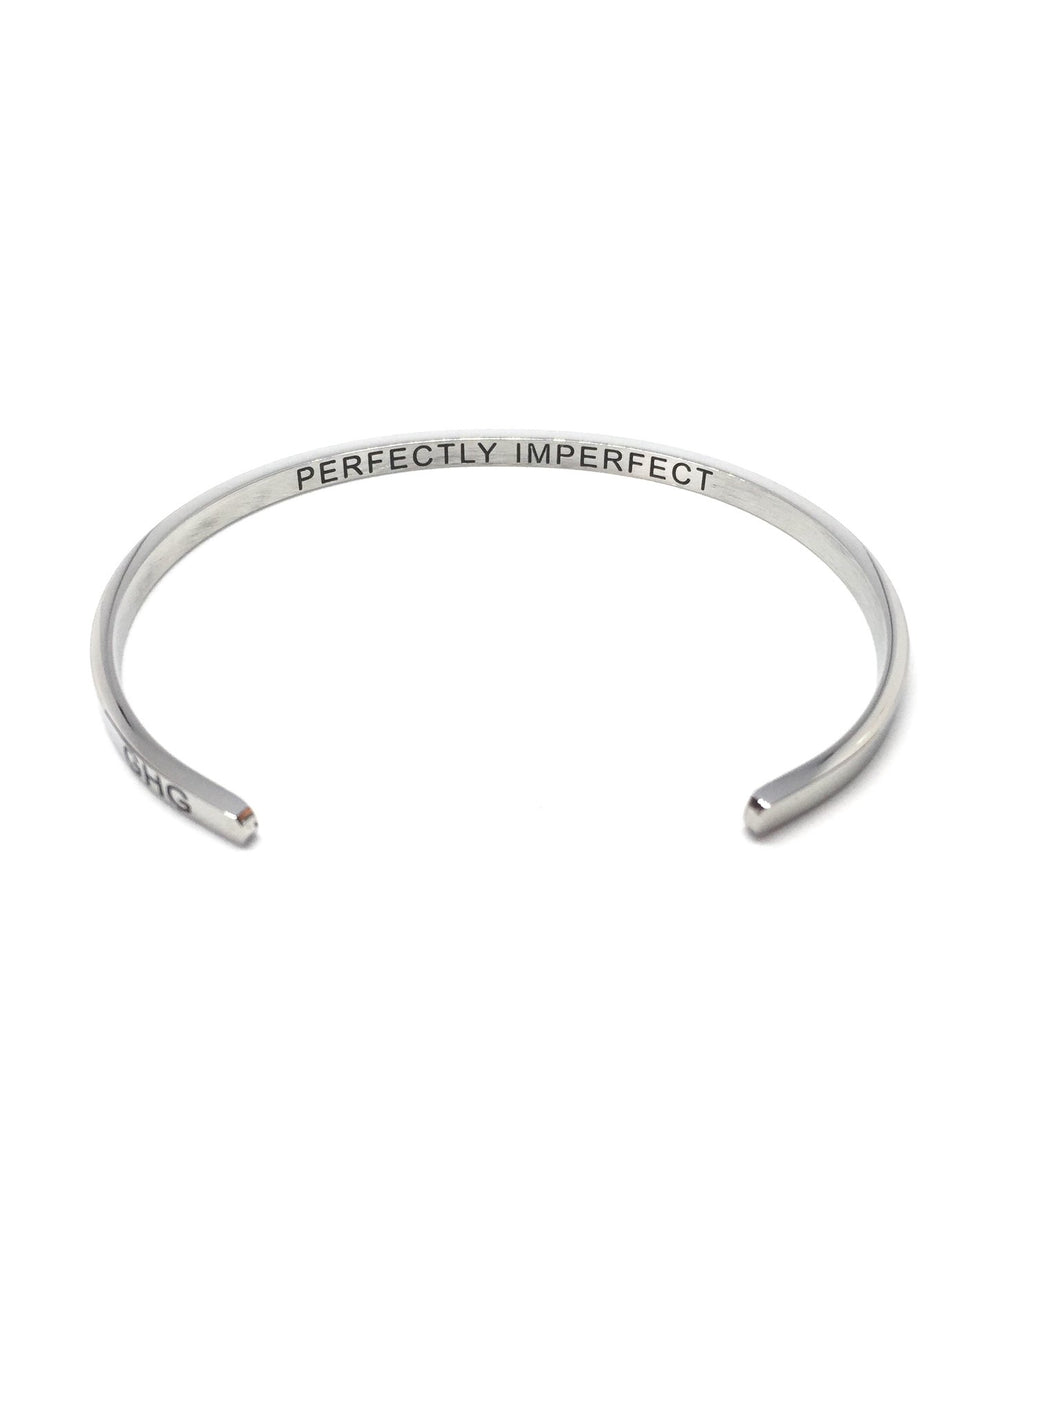 Perfectly Imperfect Bangle by Glass House Goods